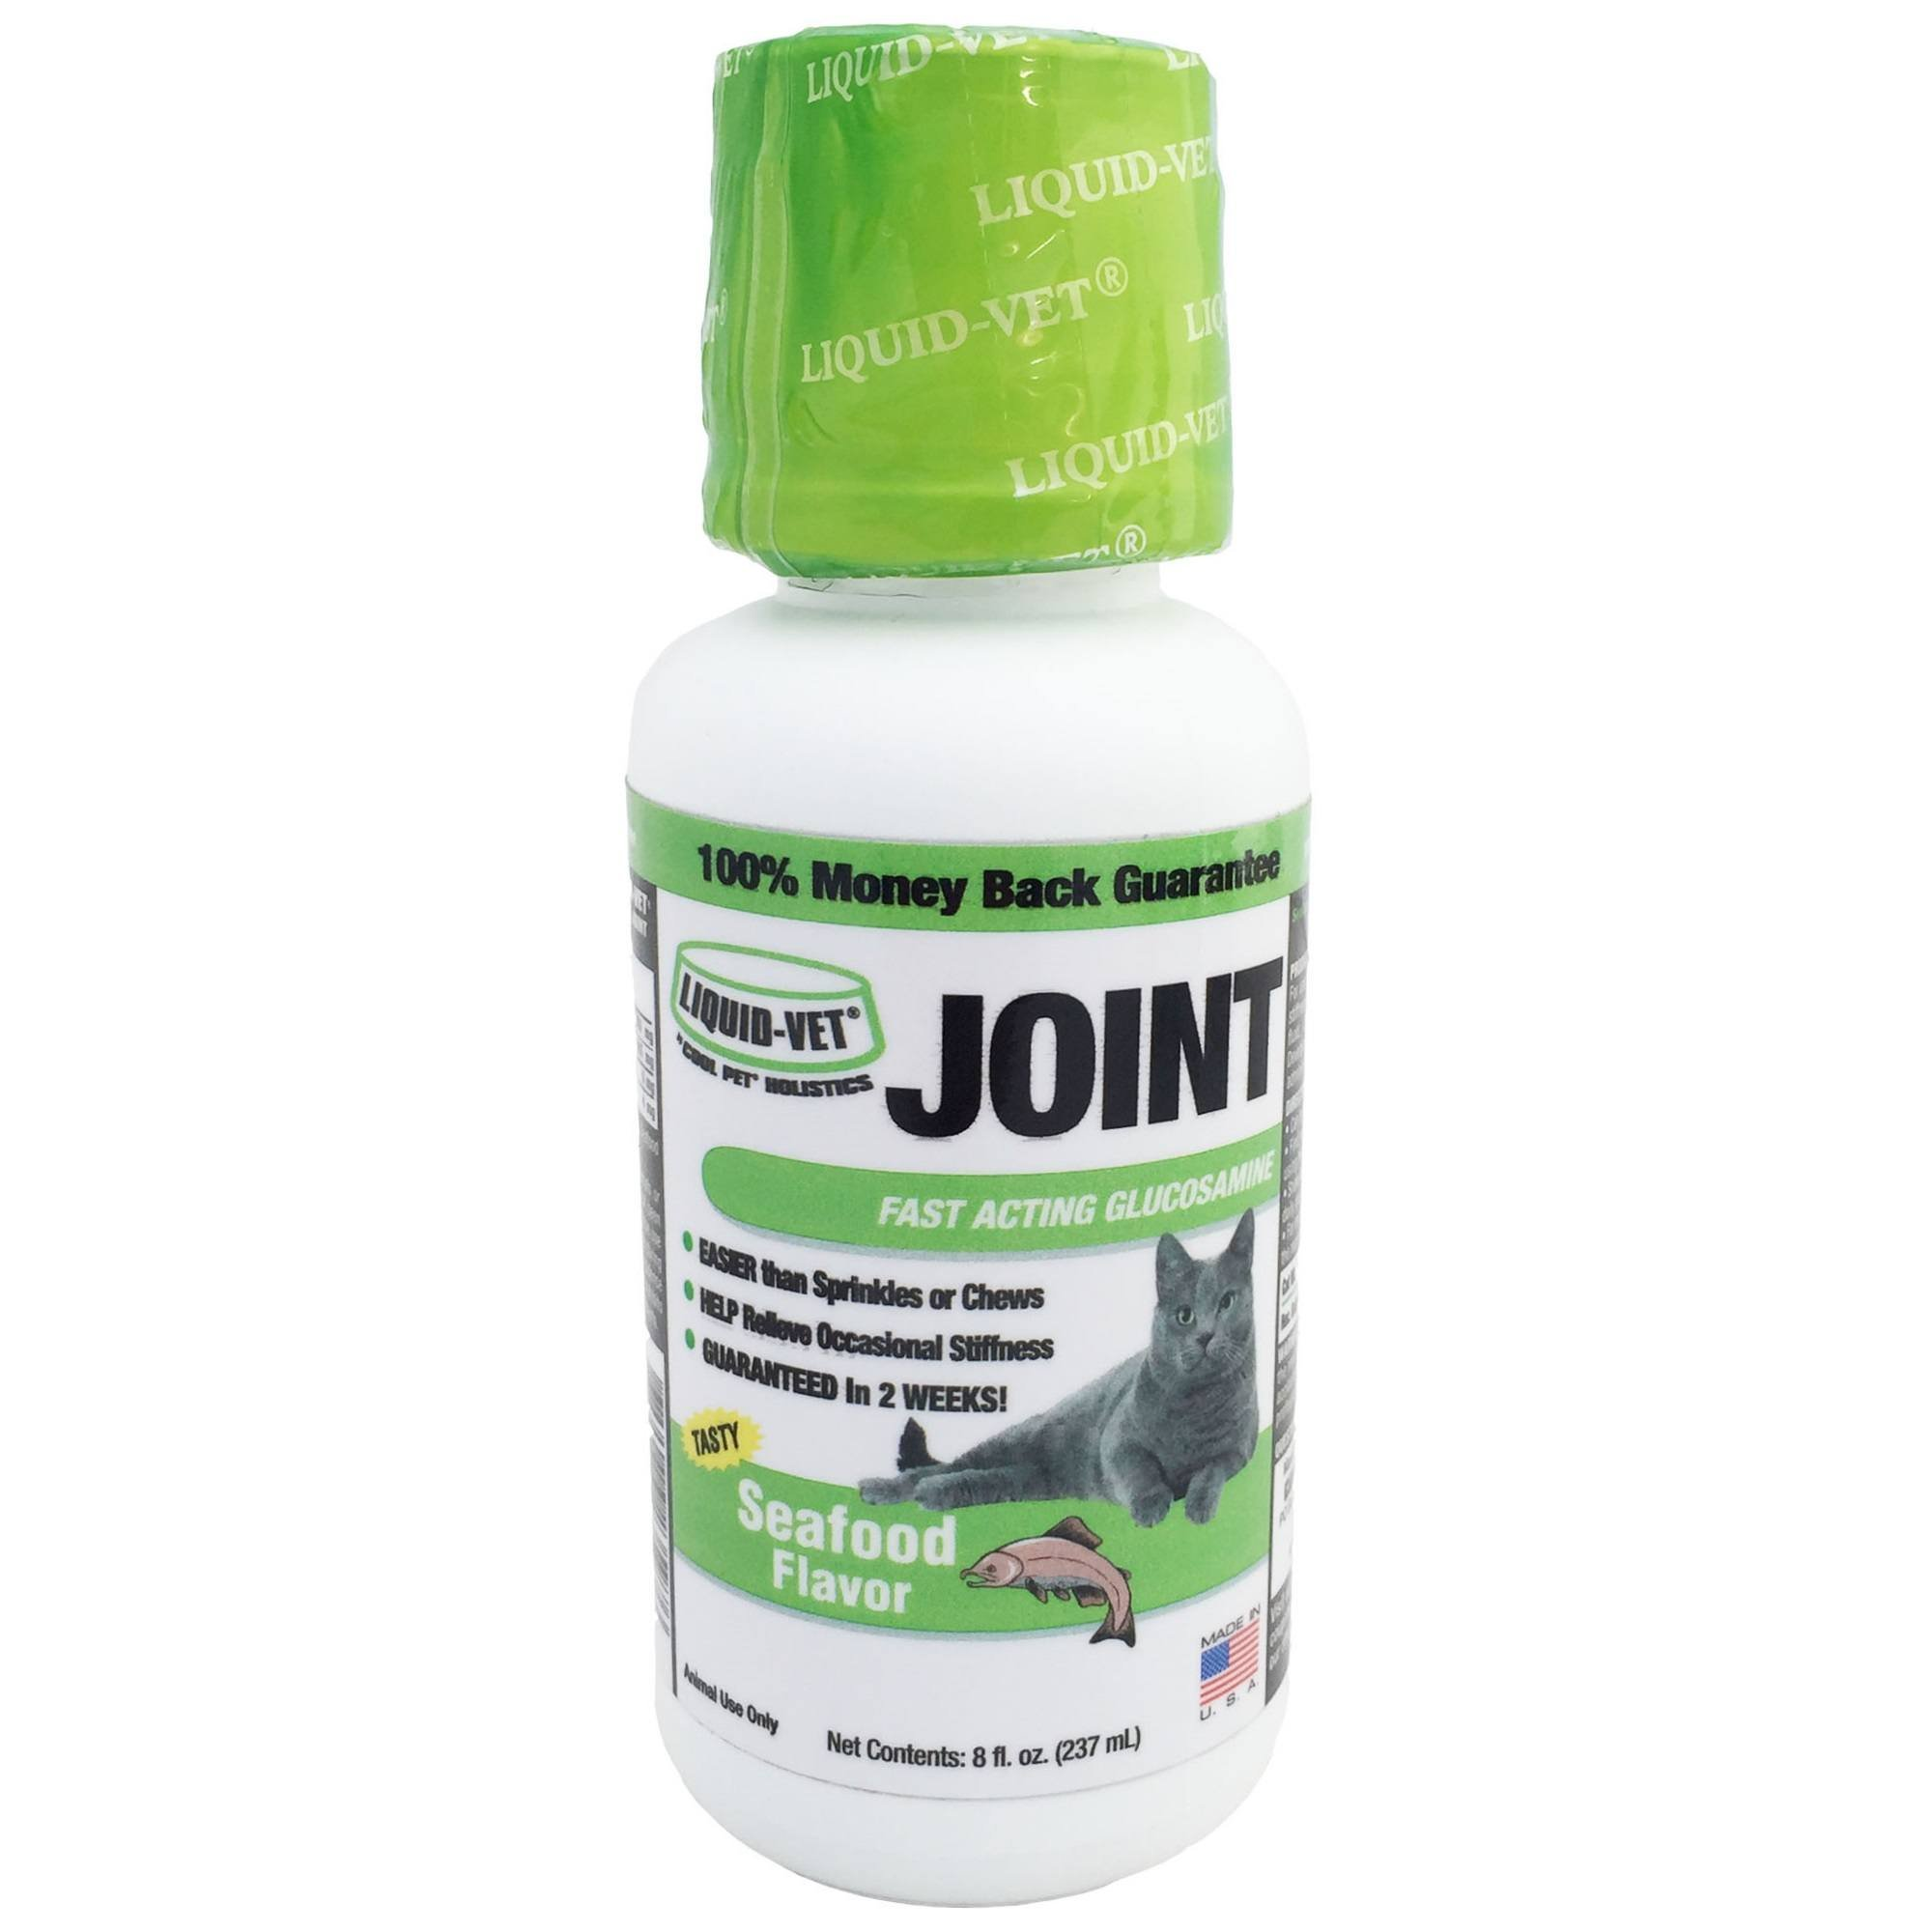 Liquid-Vet Cat Joint Formula – Fast Acting Glucosamine for Joint Aid in Felines – Seafood Flavor – 8 Fluid Ounces